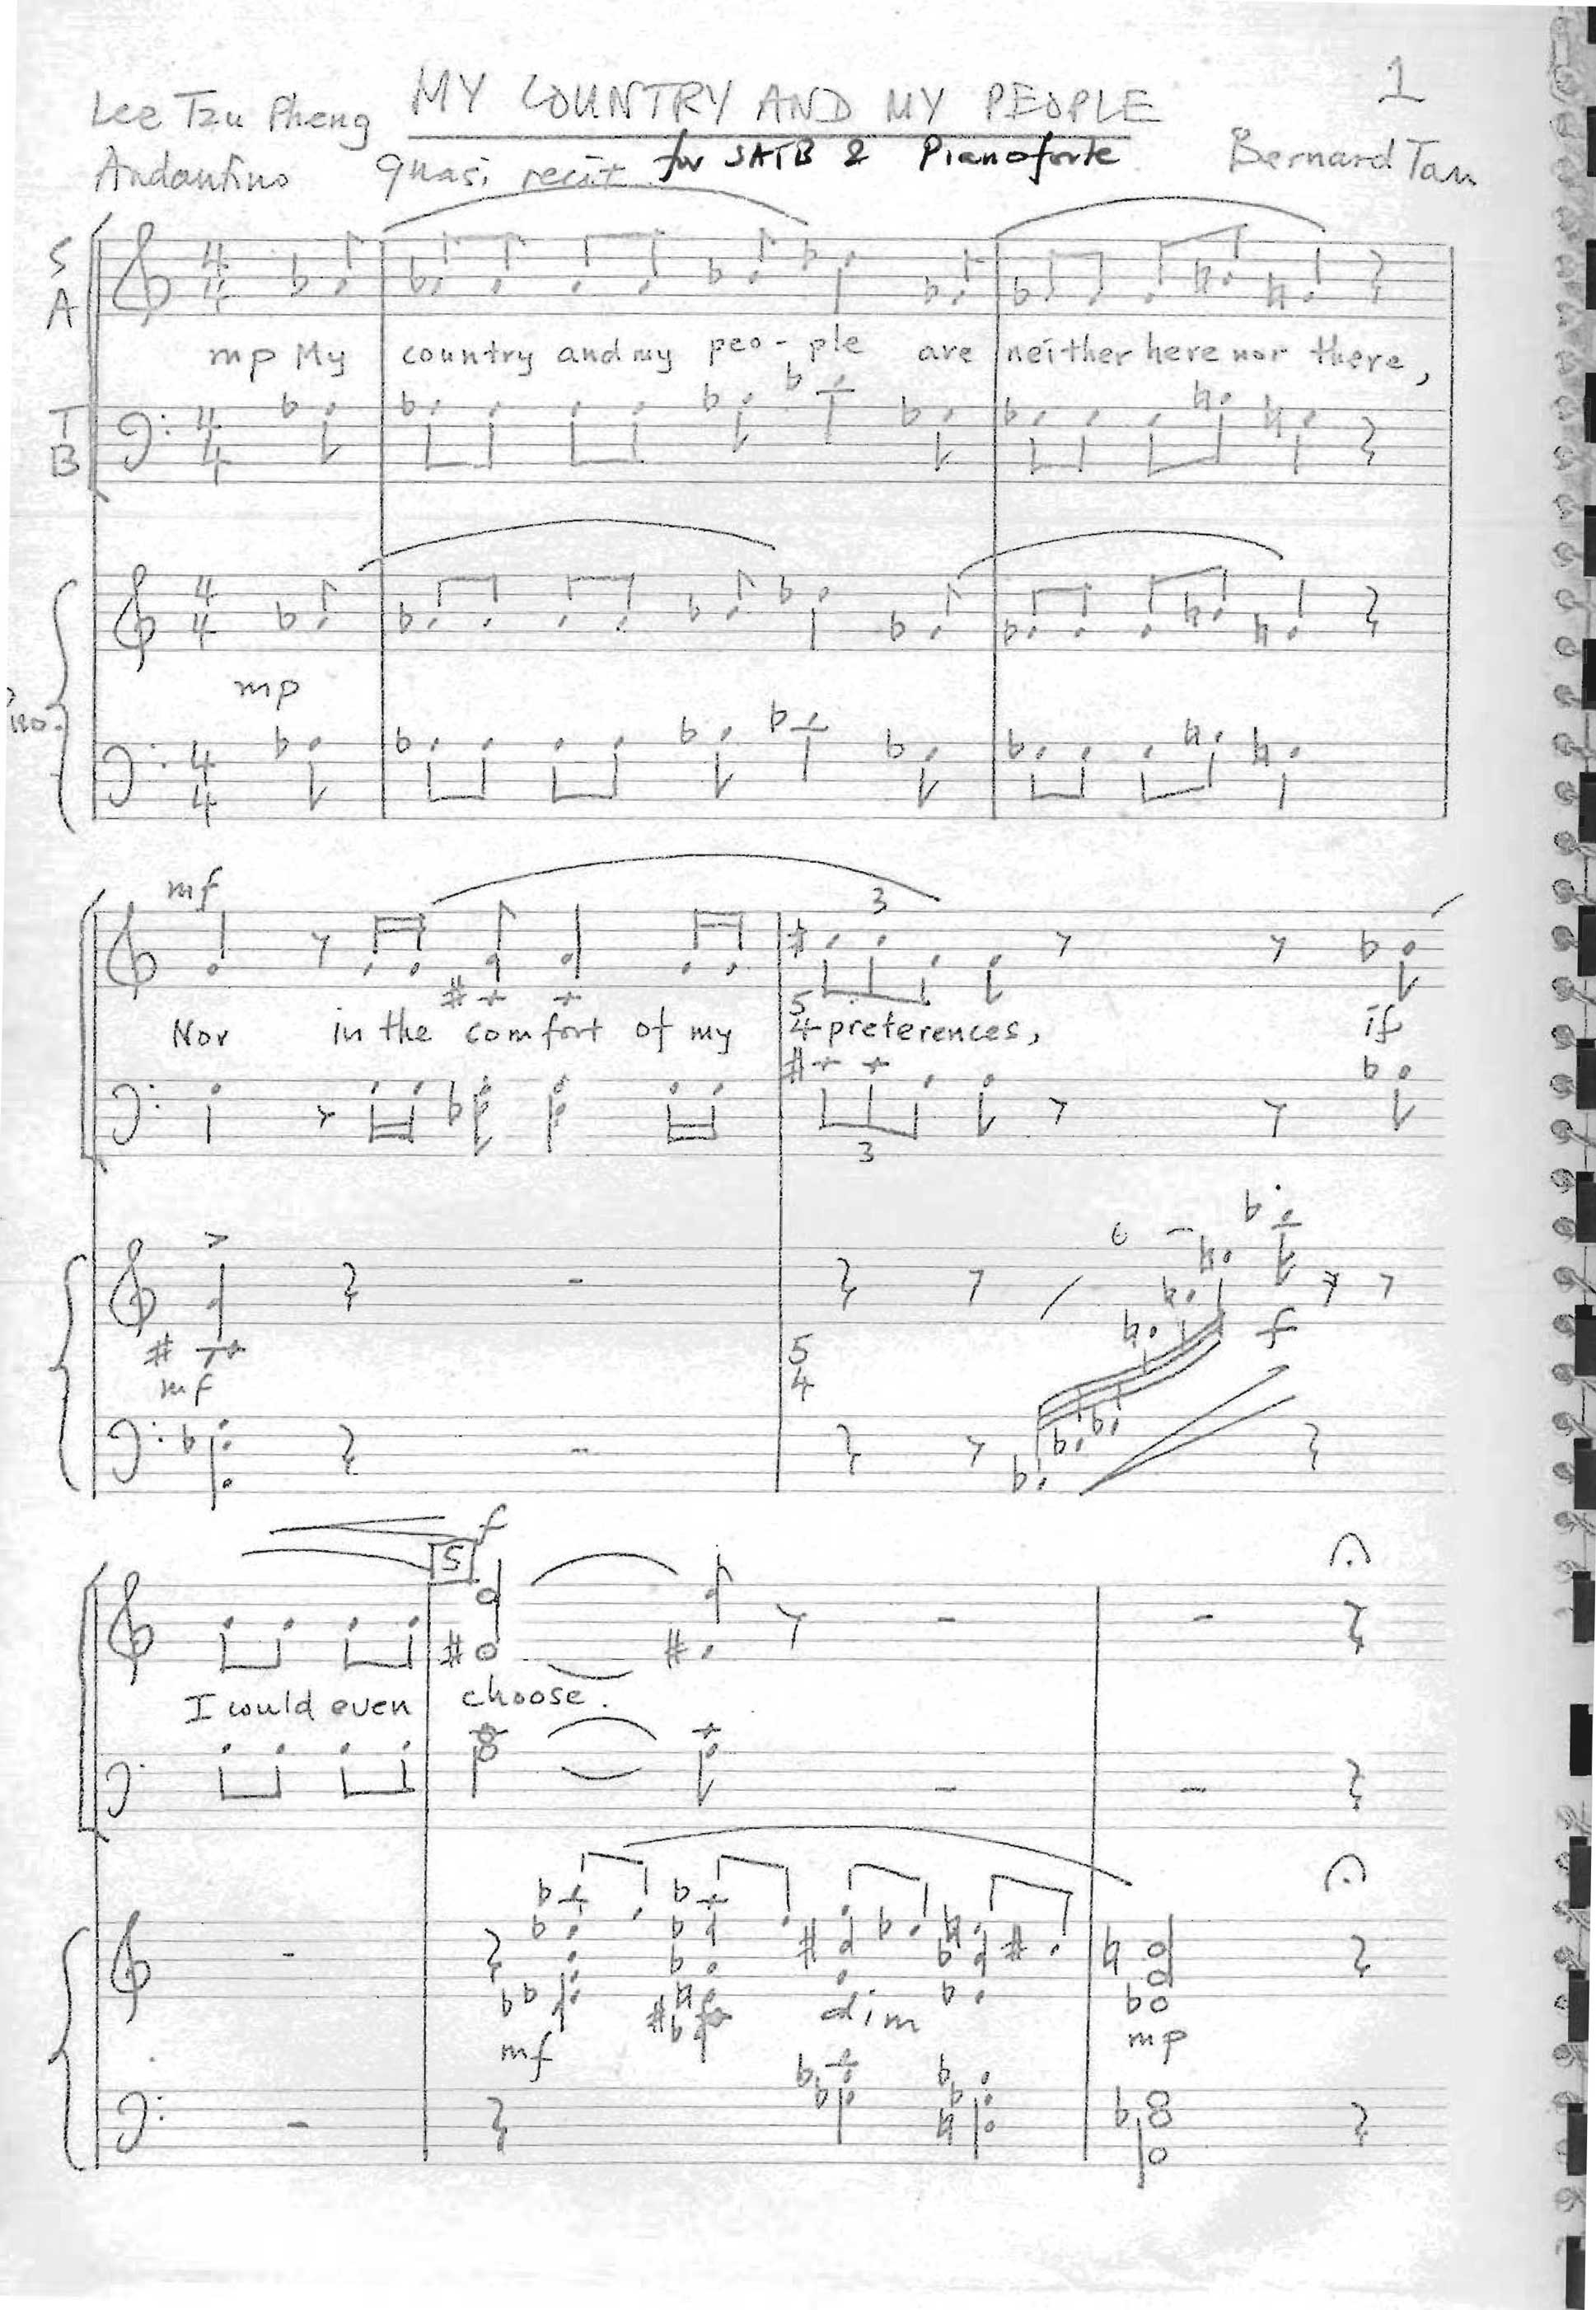 Bernard TAN: My Country and My People, for SATB choir and piano (text by Lee Tzu Pheng) (1977)